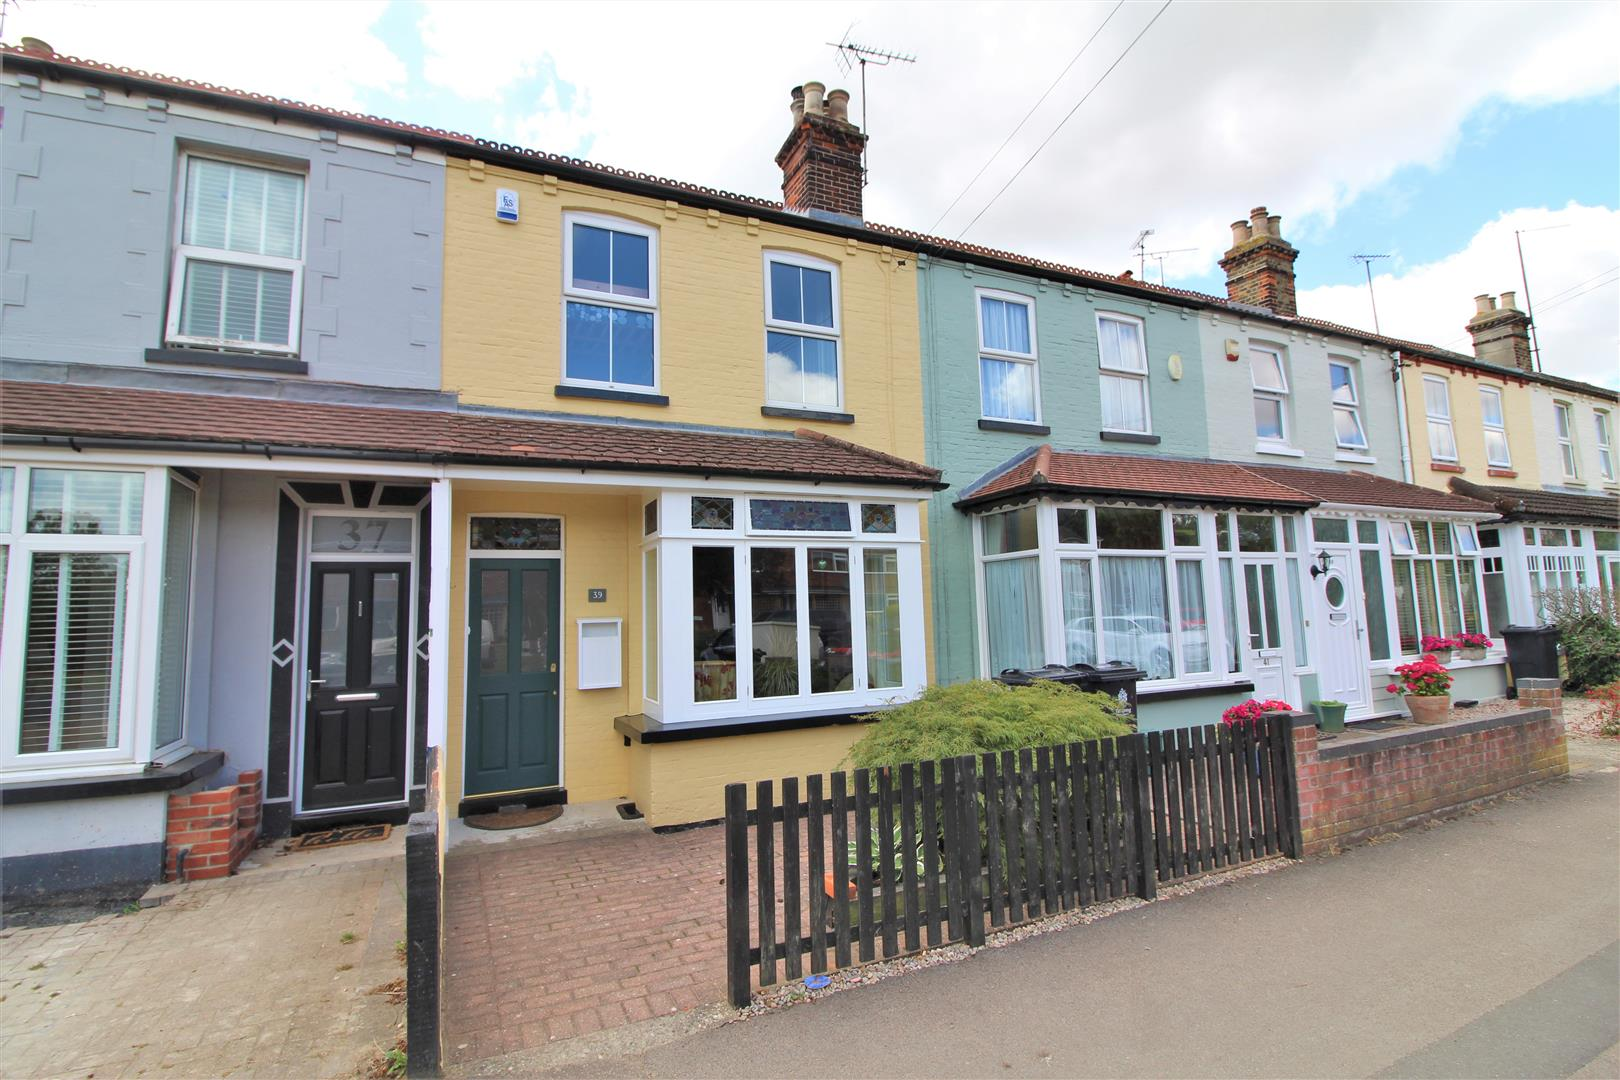 Wittonwood Road, Frinton-On-Sea, Essex, CO13 9JZ